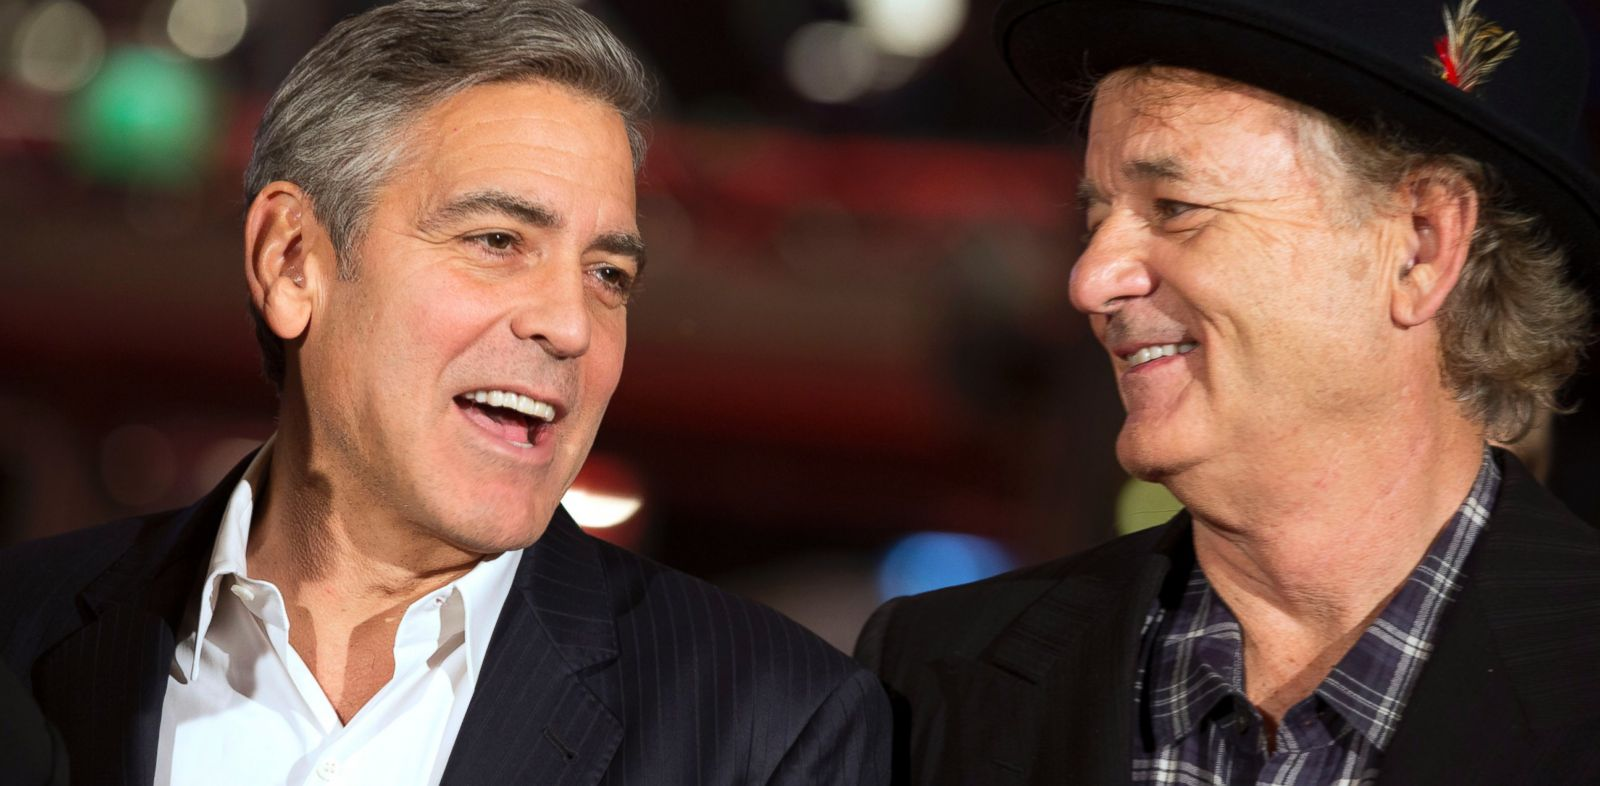 PHOTO: Actors George Clooney and Bill Murray arrive for the screening of the film The Monuments Men during the International Film Festival Berlinale, in Berlin, Feb. 8, 2014.